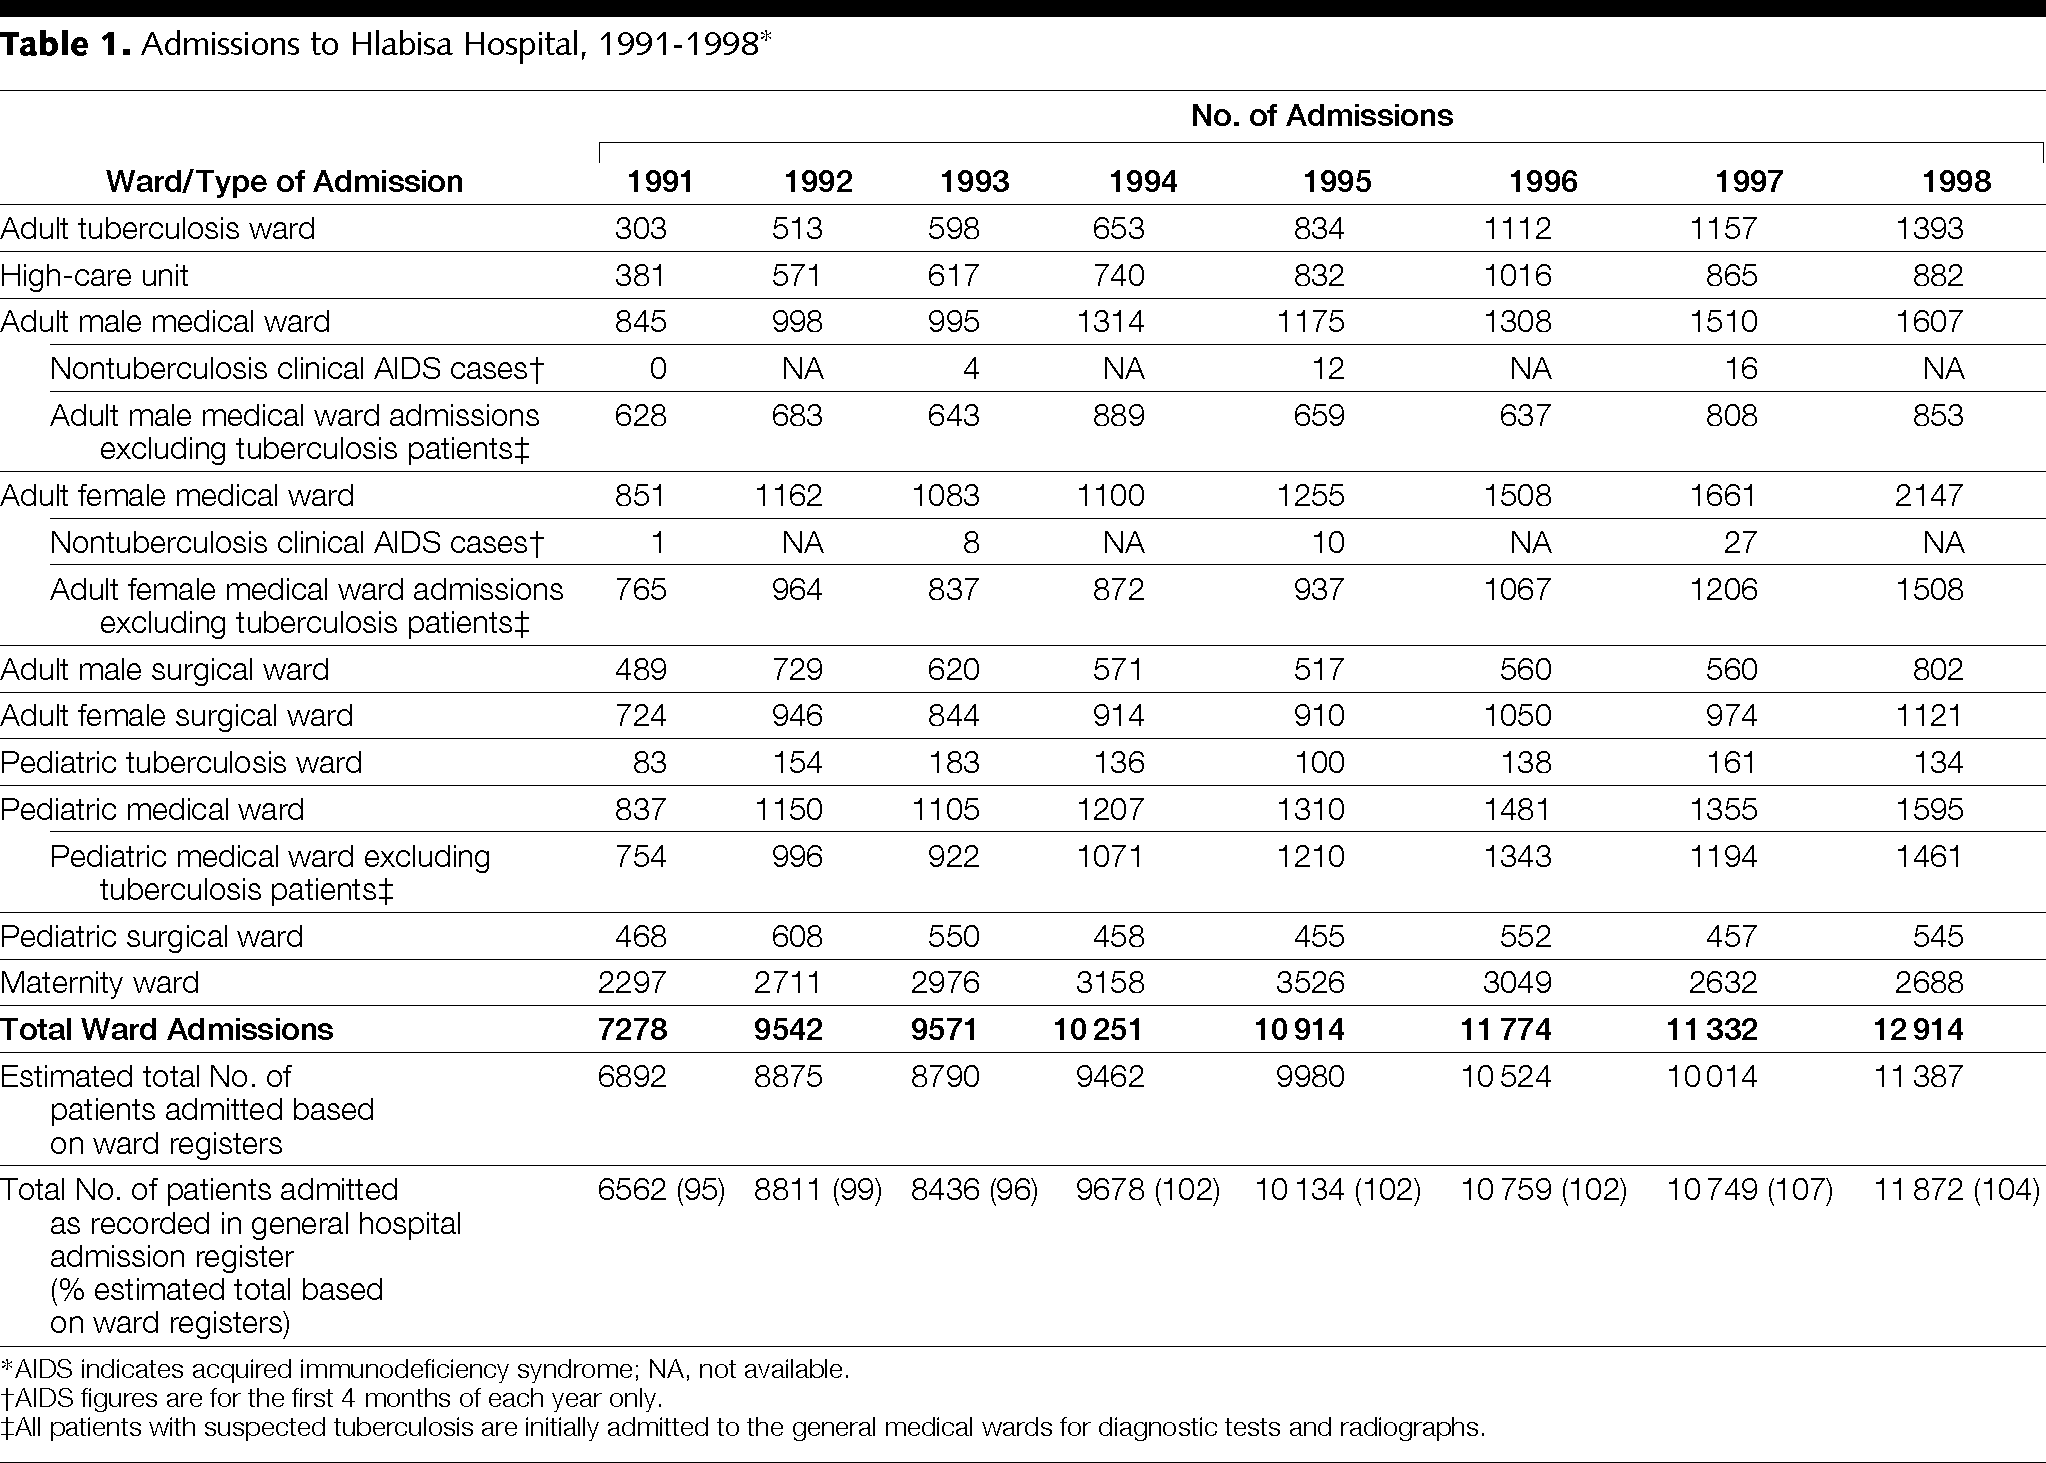 Admission Trends in a Rural South African Hospital During